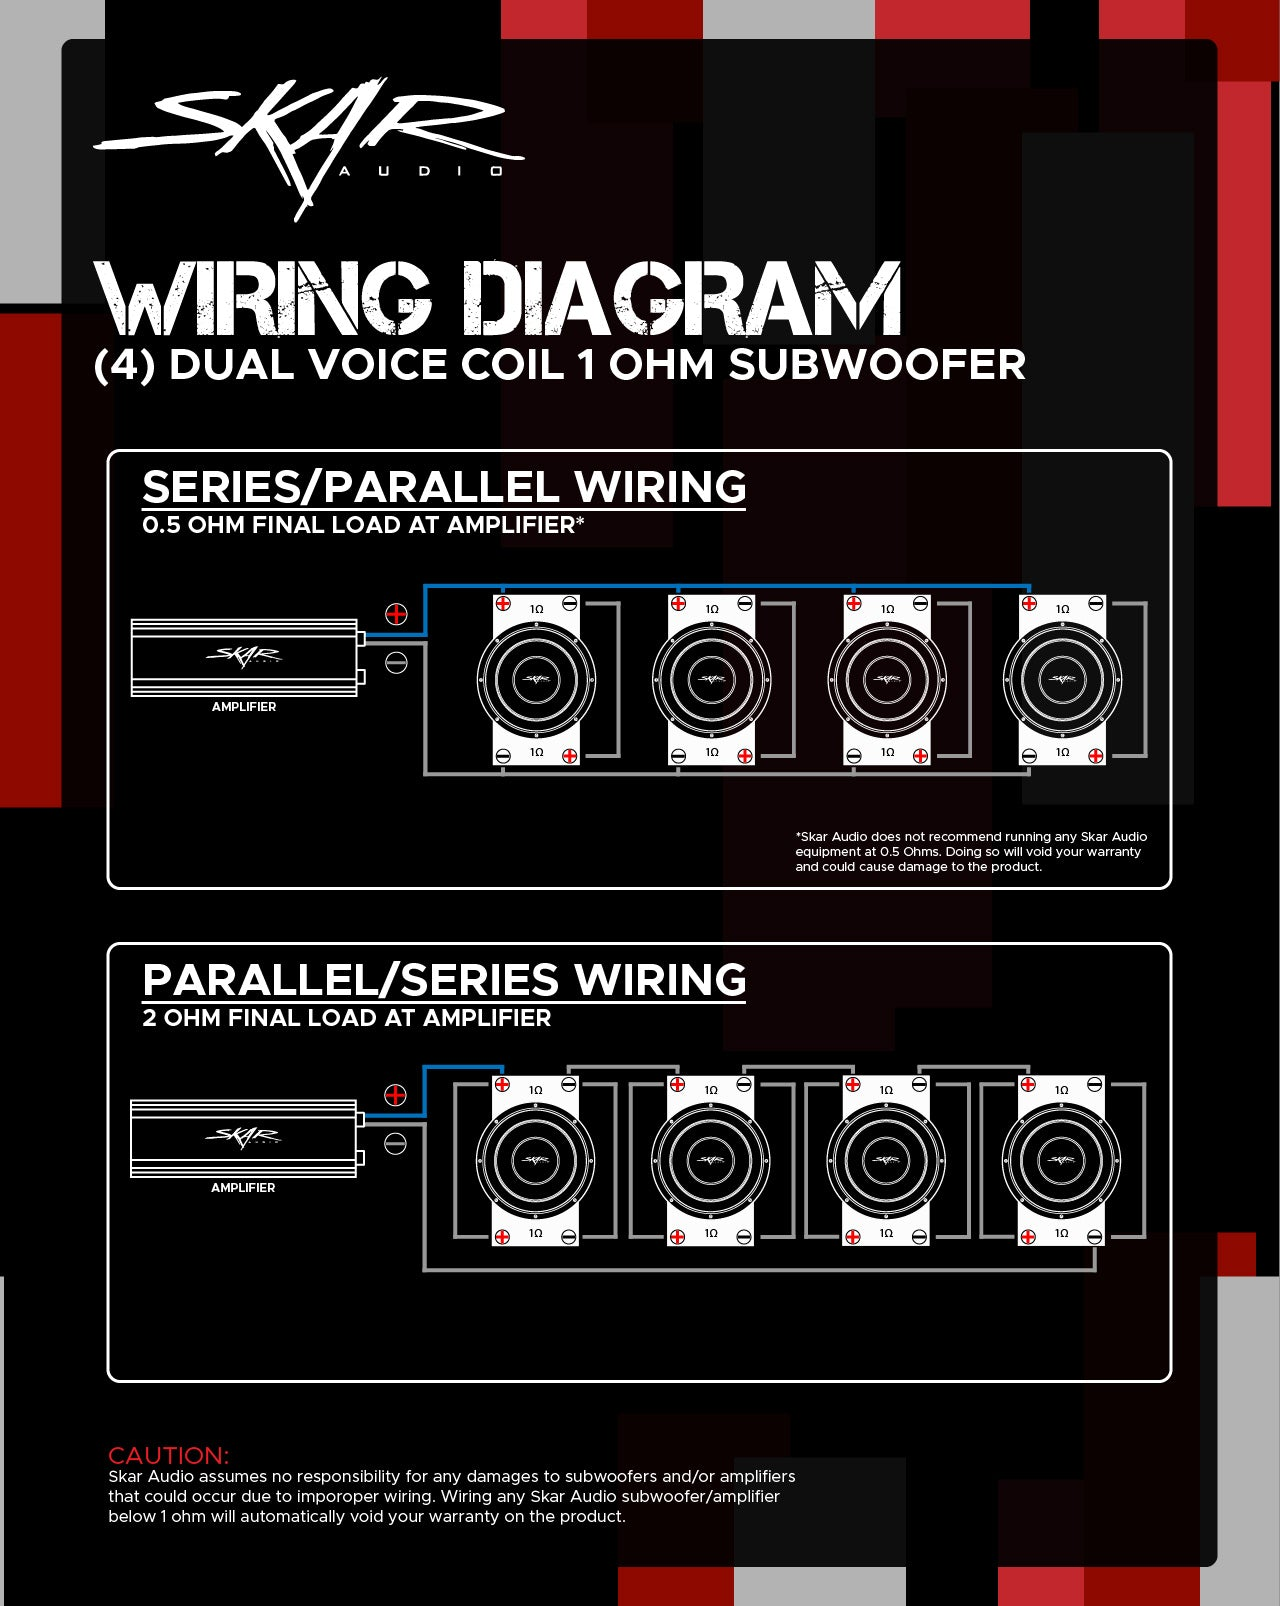 Dual Voice Coil Subwoofer Wiring Guides - Skar Audio Knowledge Base & Help  Desk | Hx2 Dual 2 Ohm Subwoofer Wiring Diagram |  | Skar Audio Knowledge Base & Help Desk